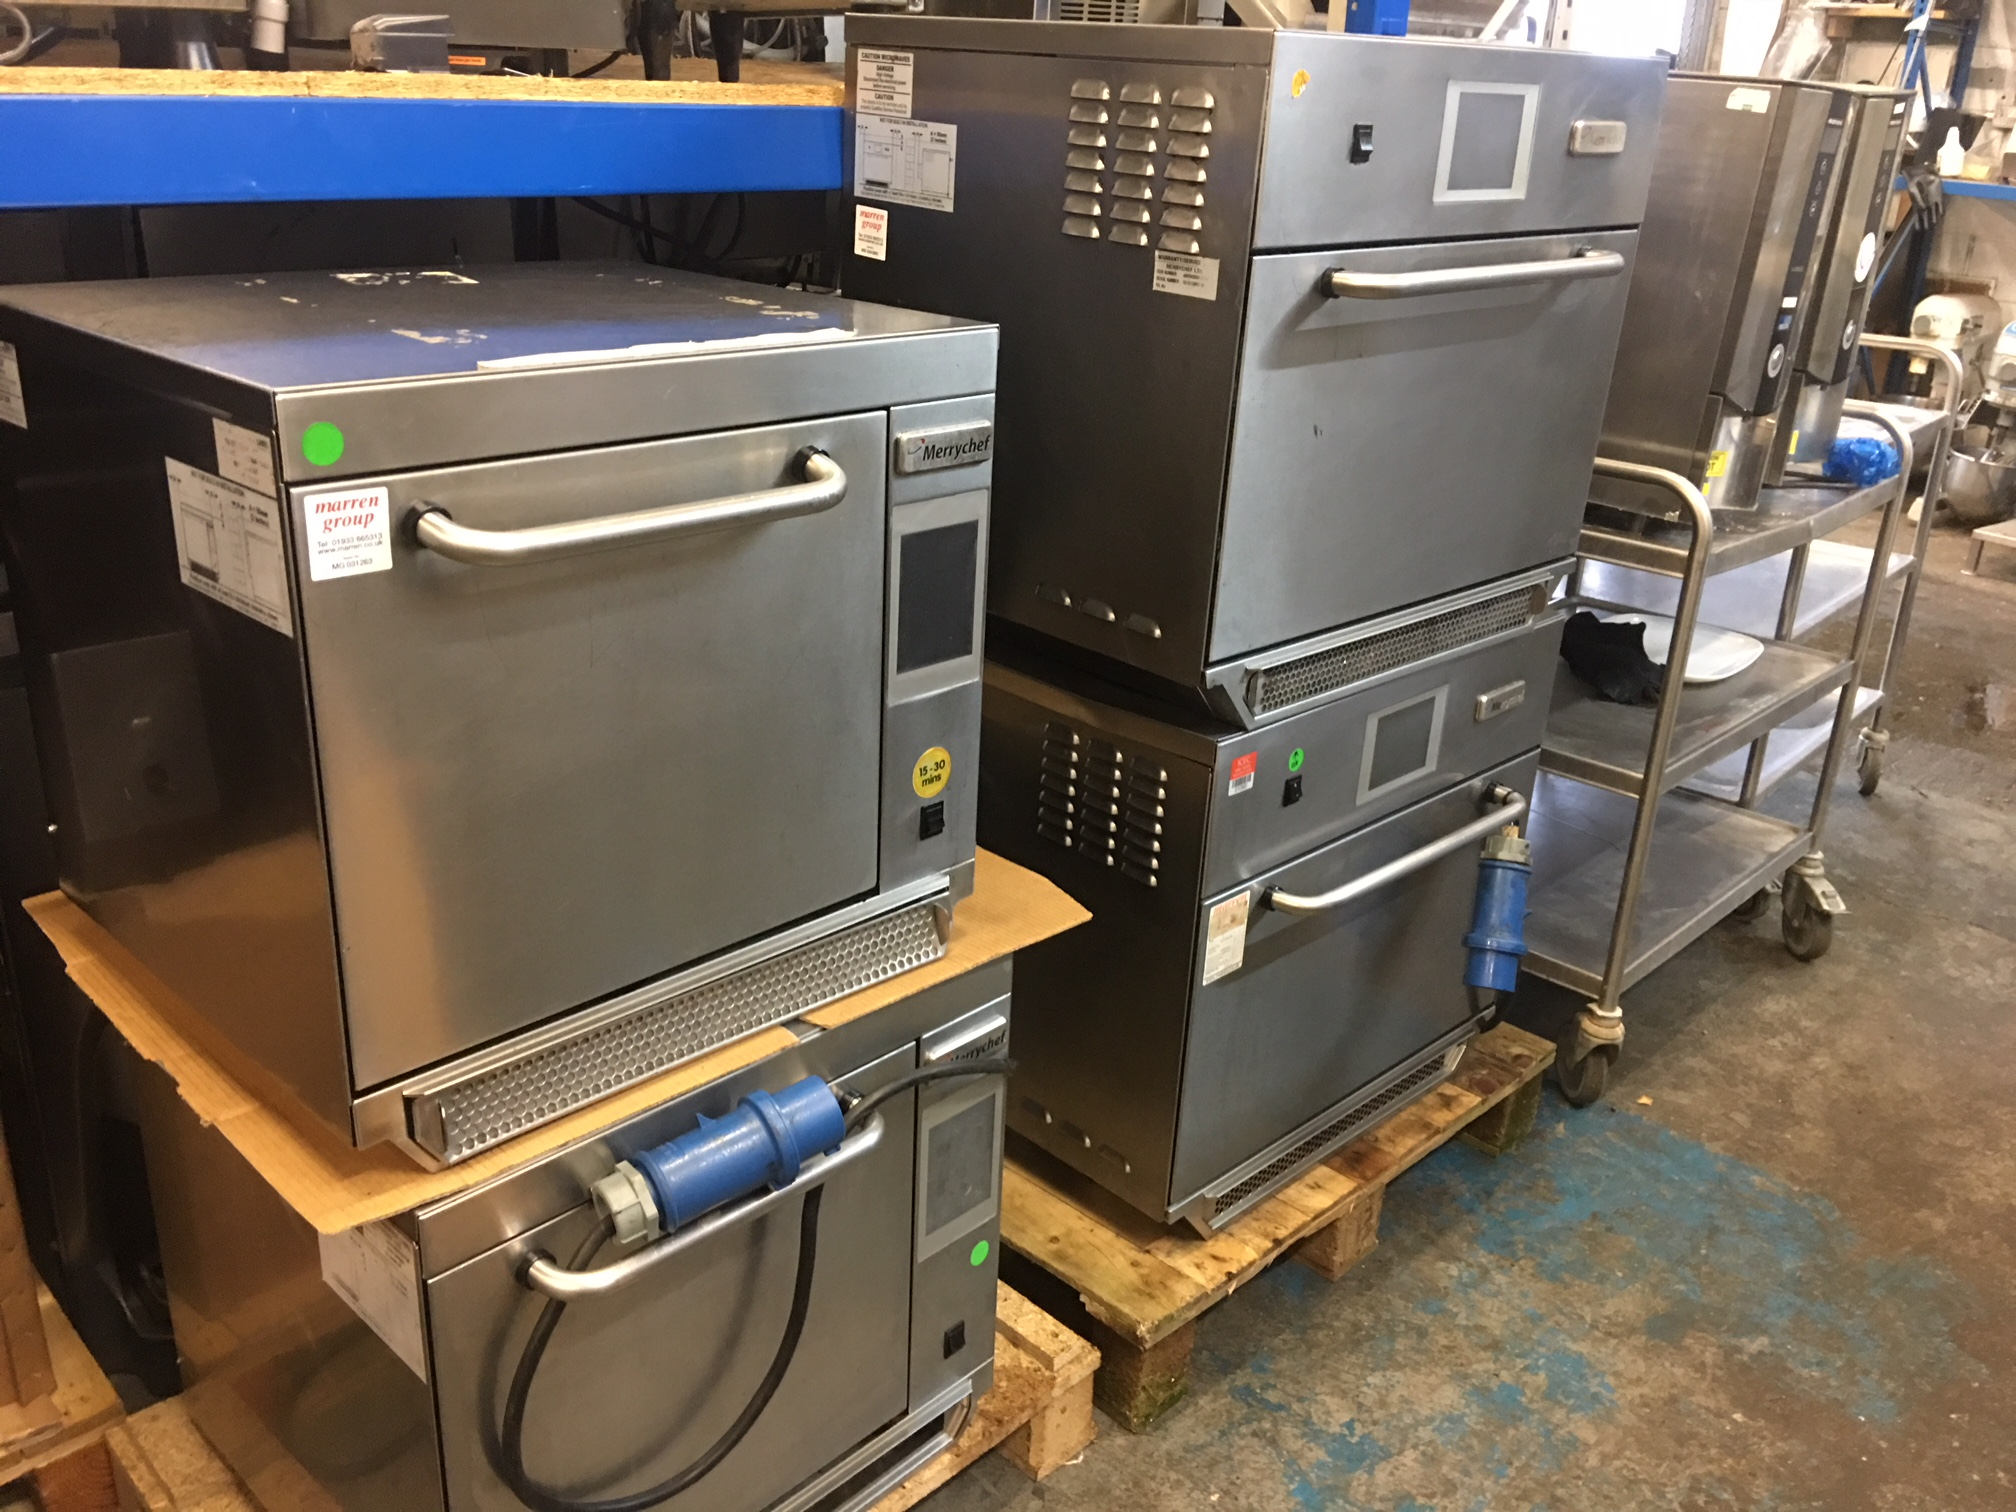 Merry Chef E3 Commercial Combination Oven (We have 4 in stock- price for 1  only)